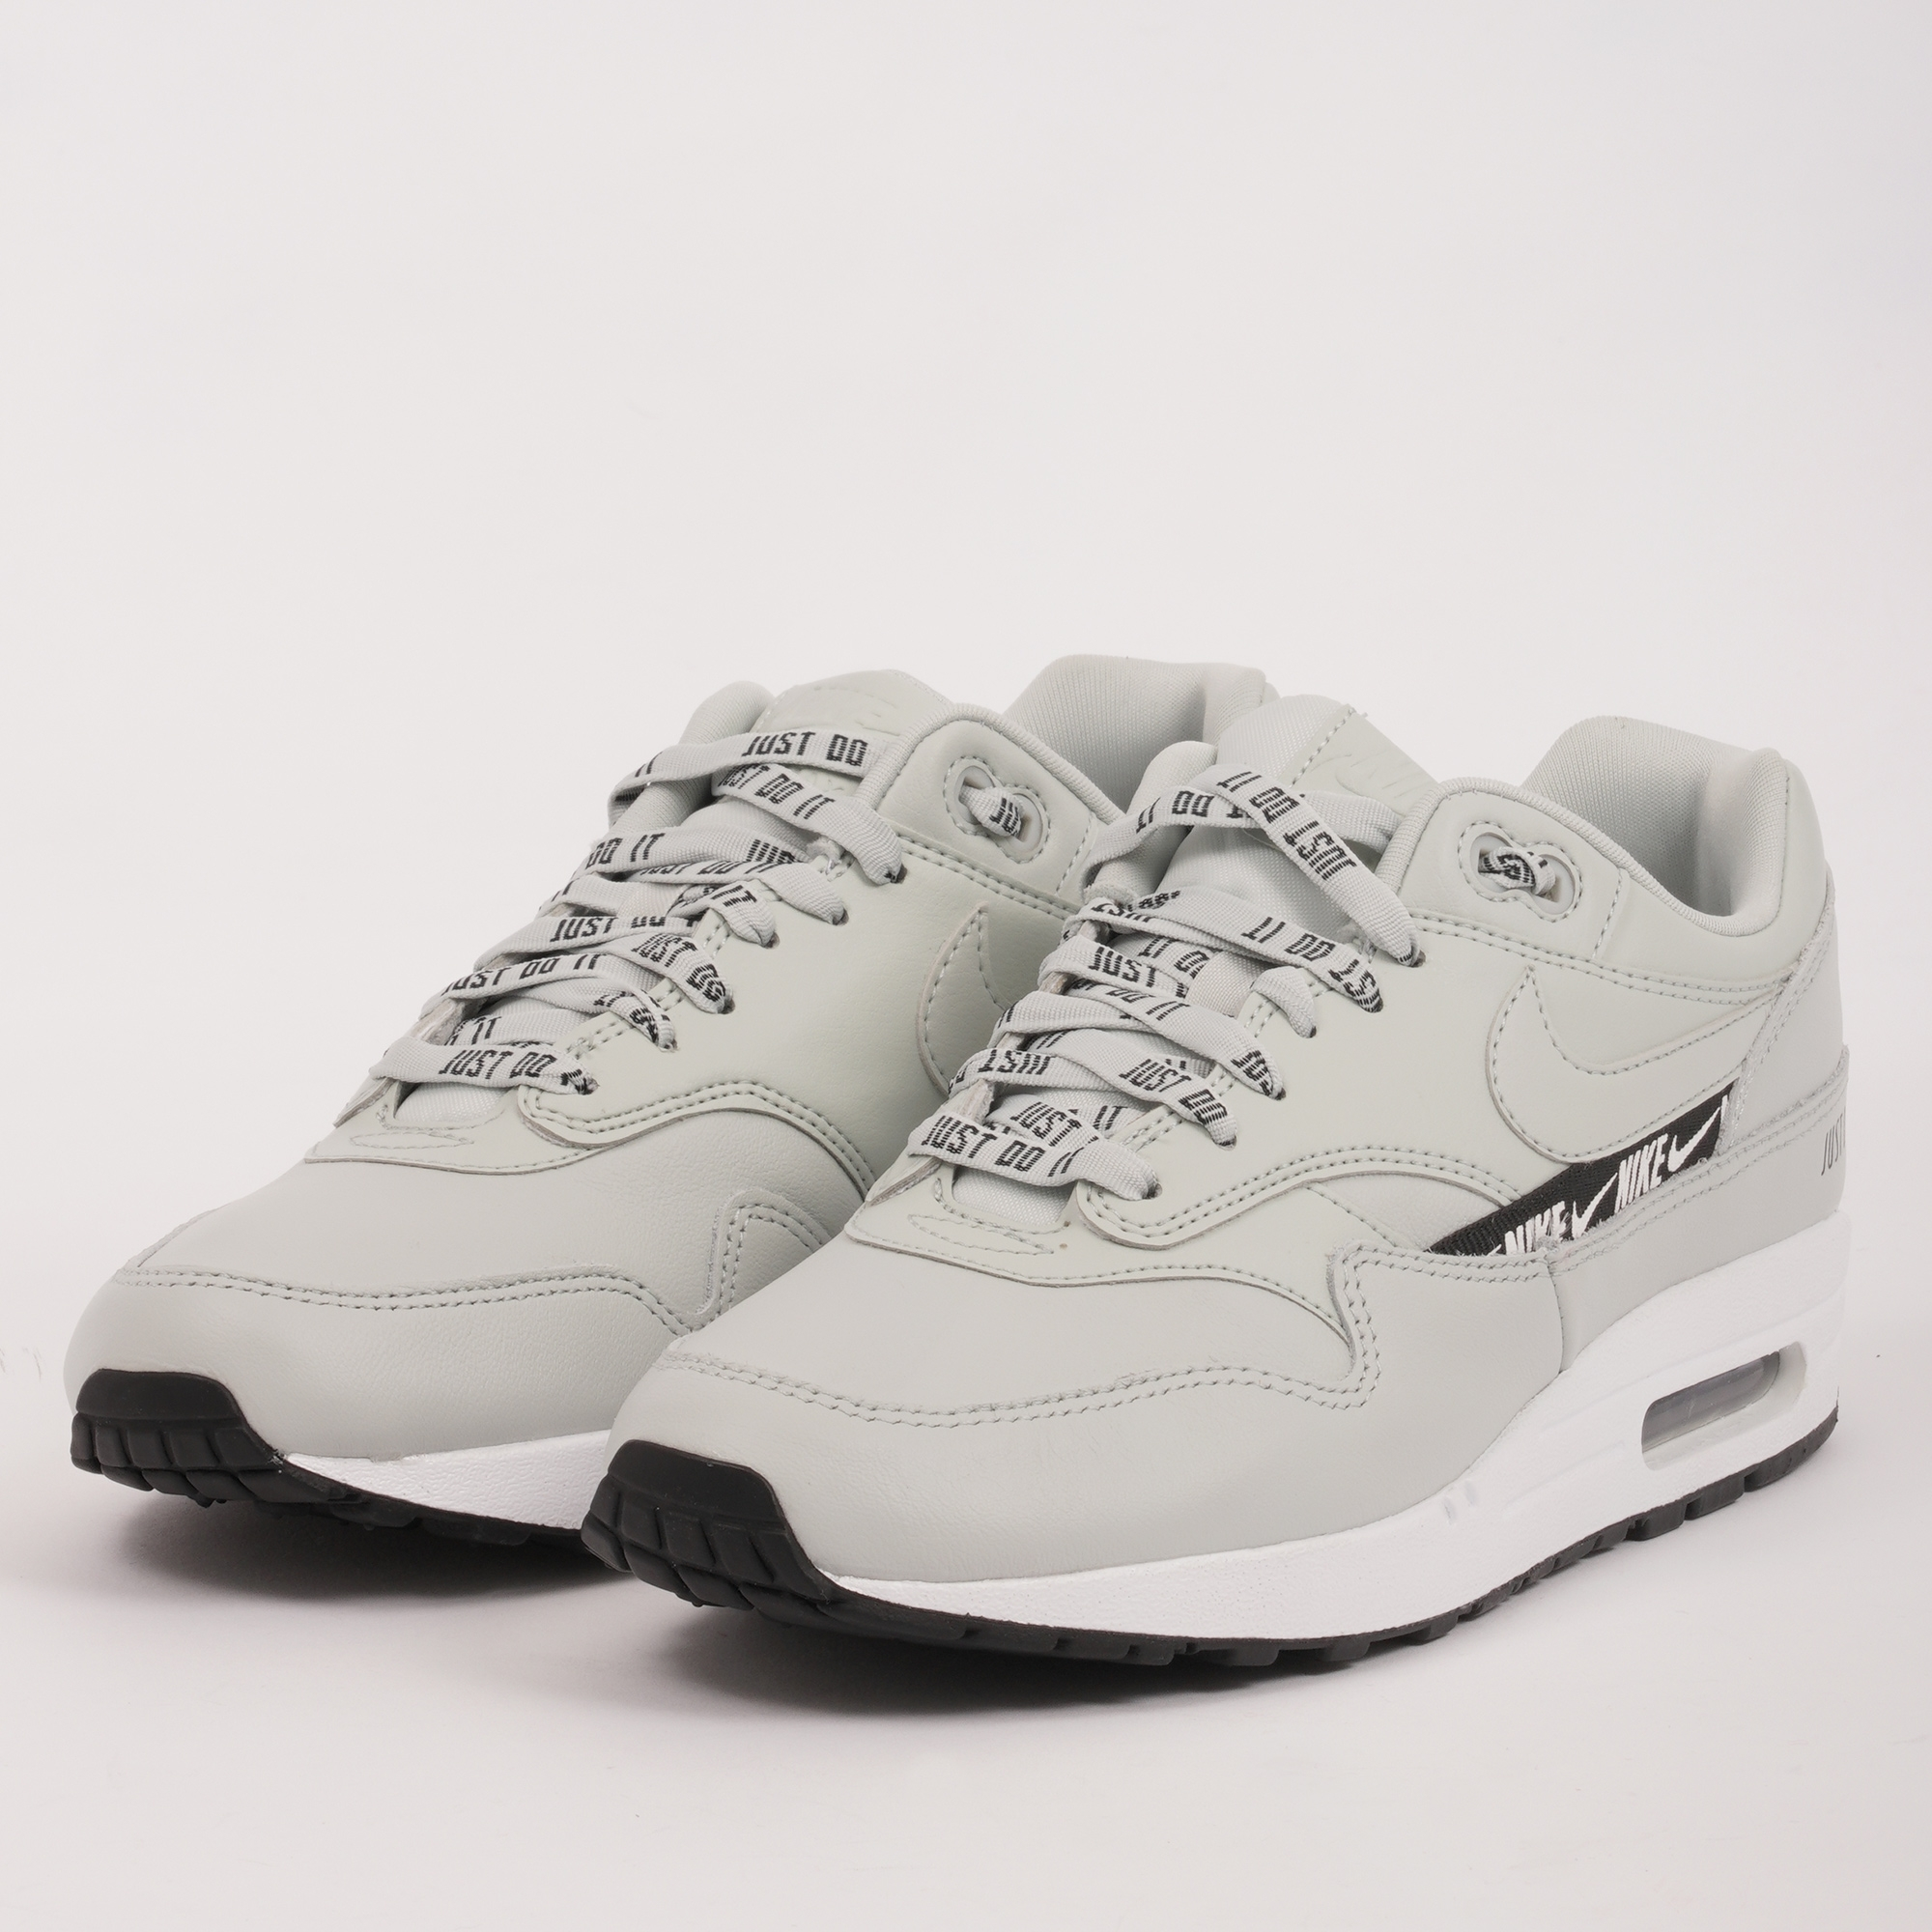 Nike Air Max 1 SE Women's Trainers